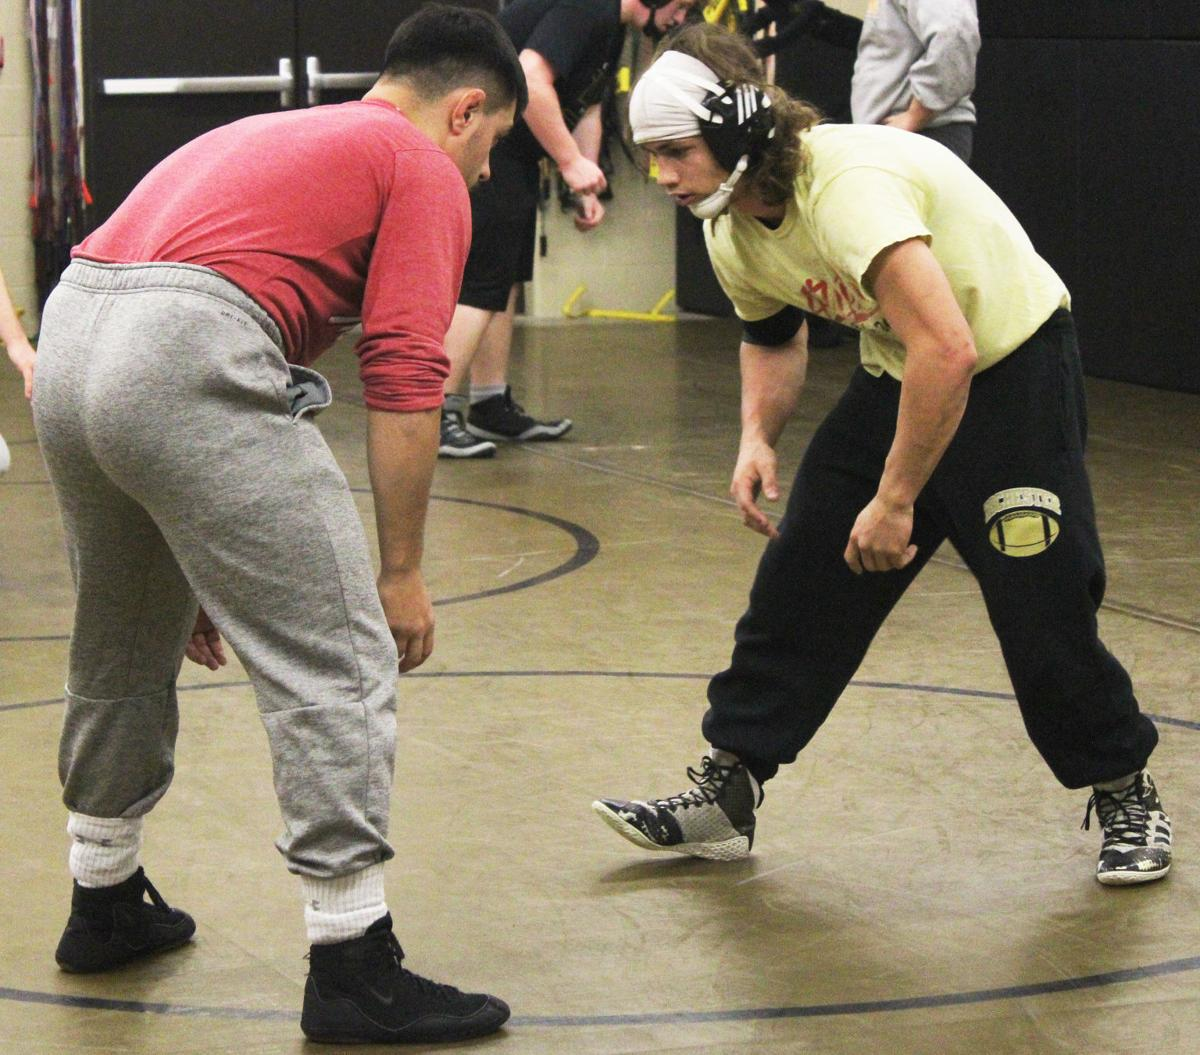 SP 11-18-20 RHS wrestle pract 1.jpg